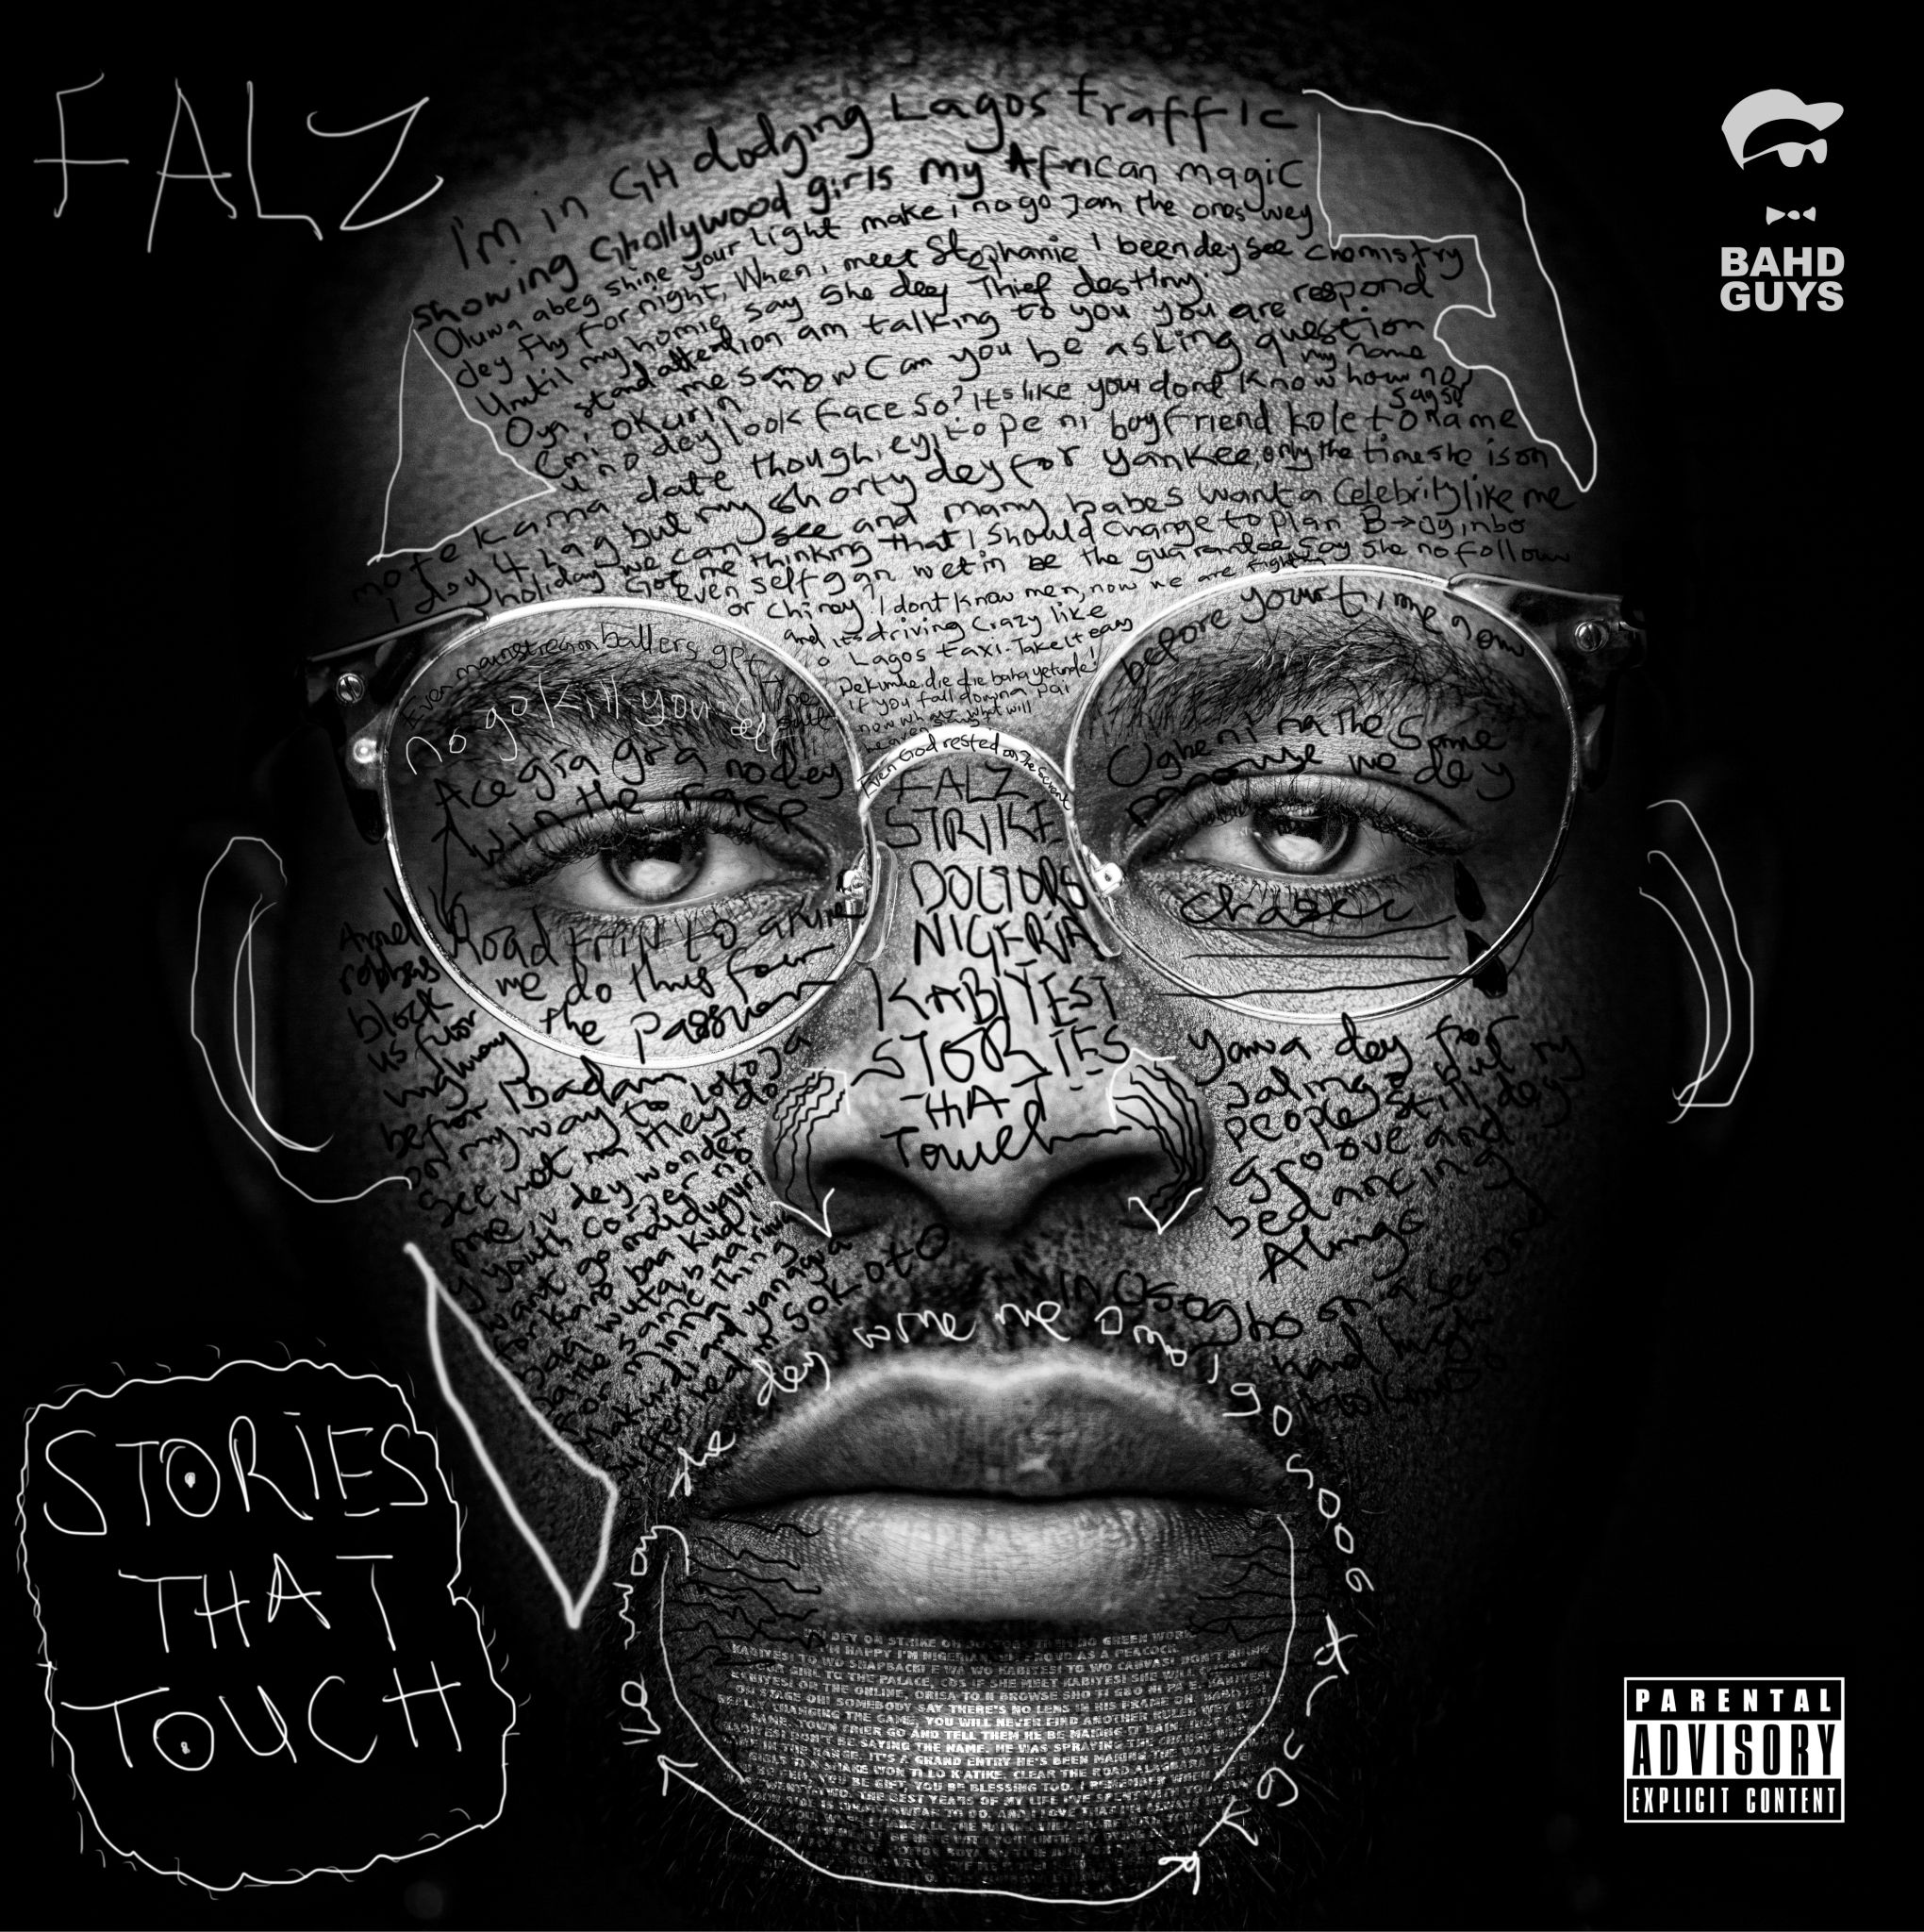 FALZ – On The Edge of Greatness?